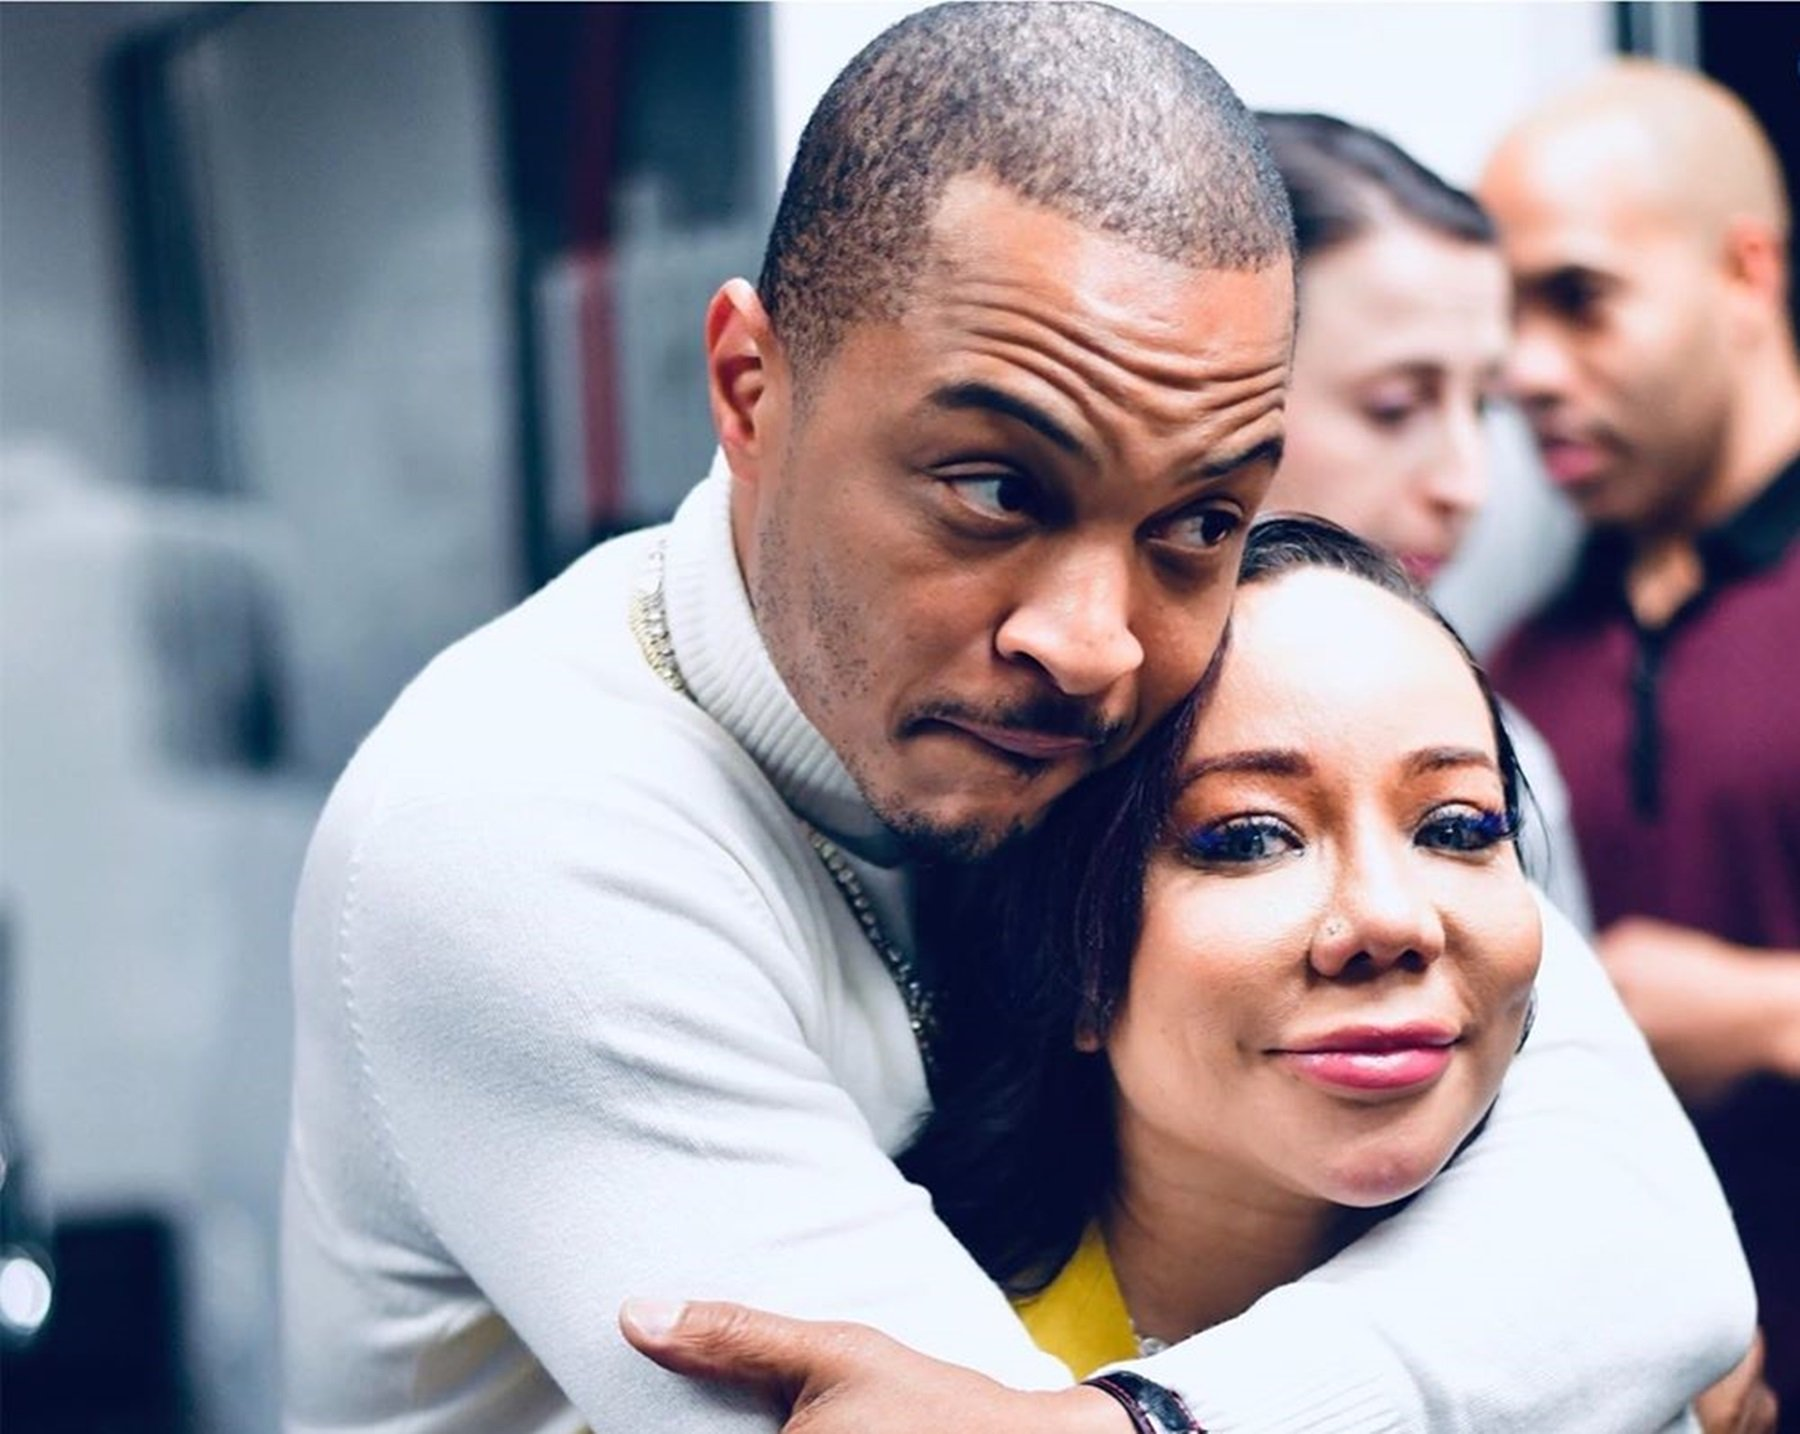 Tiny Harris Reveals The New Addition To The Family With A Sweet Photo